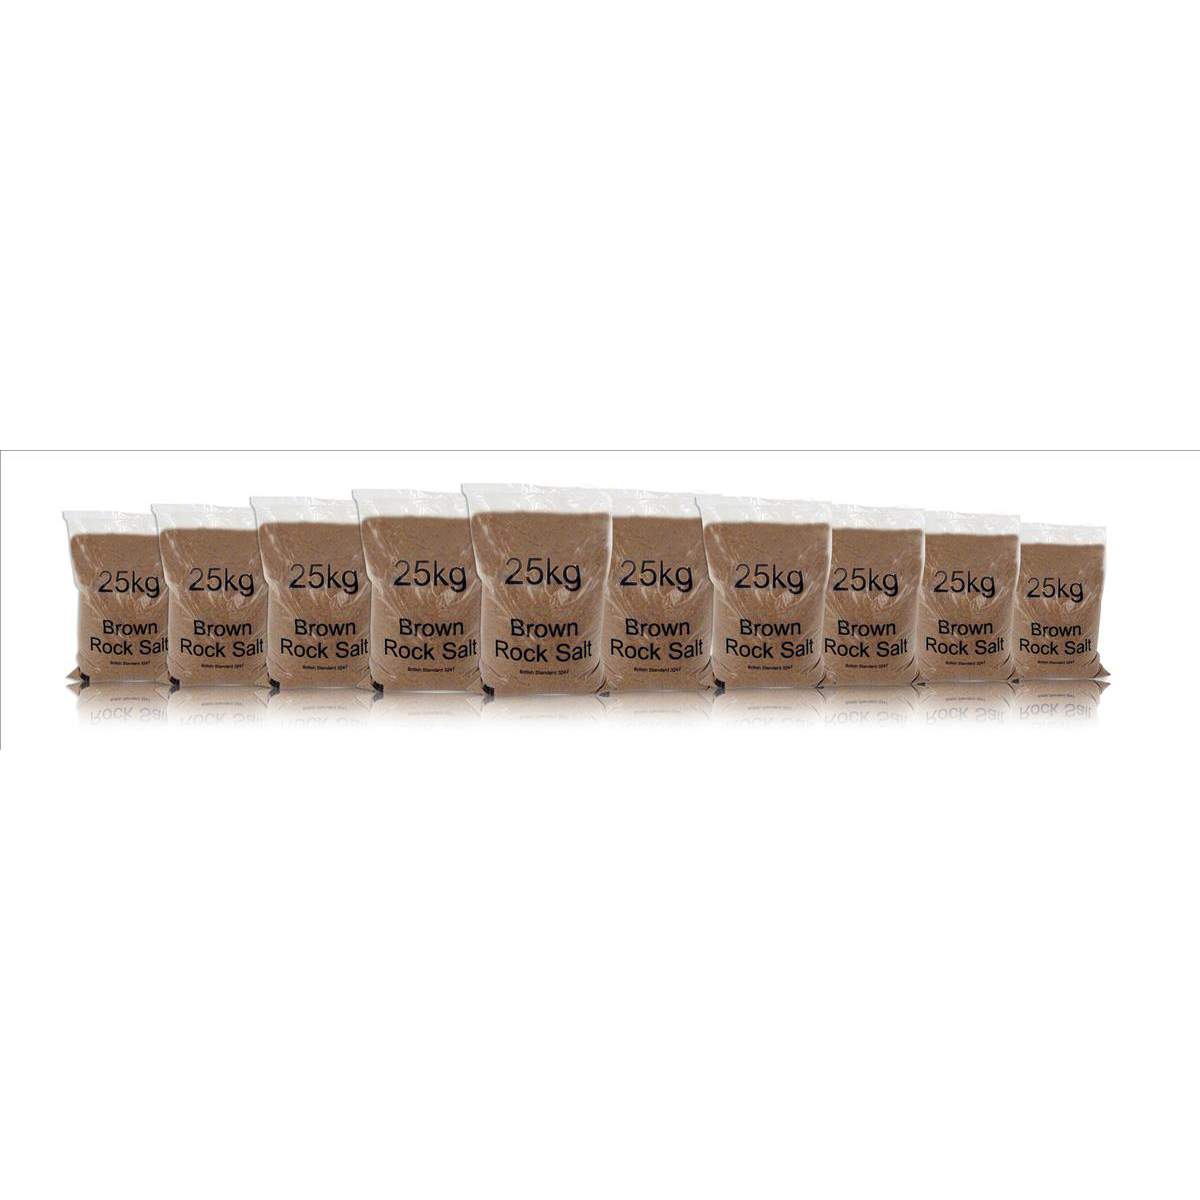 Rock Salt De-icing 25kg Brown [Packed 10]